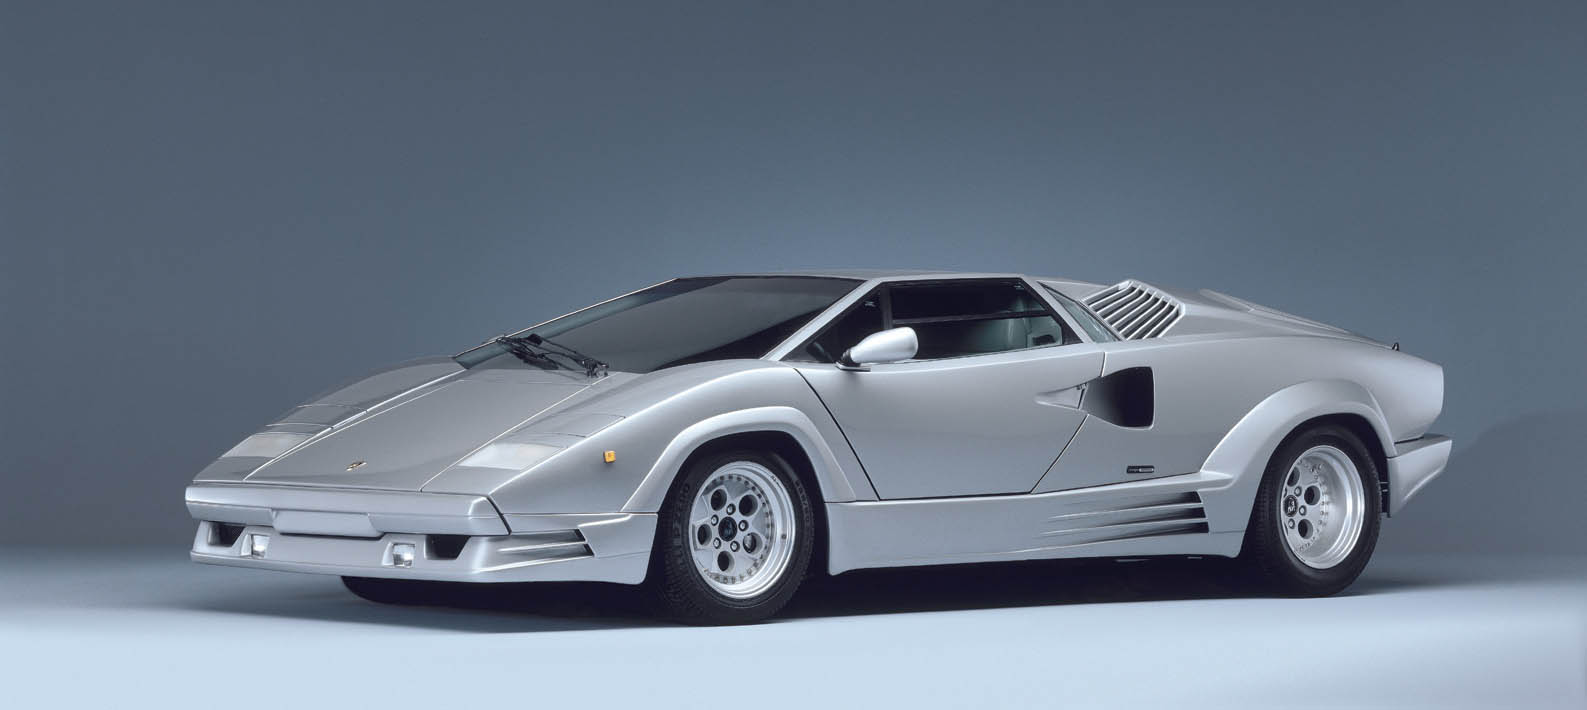 Lamborghini Countach 25th Anniversary 1988 5 The Legendary Lamborghini  Countach